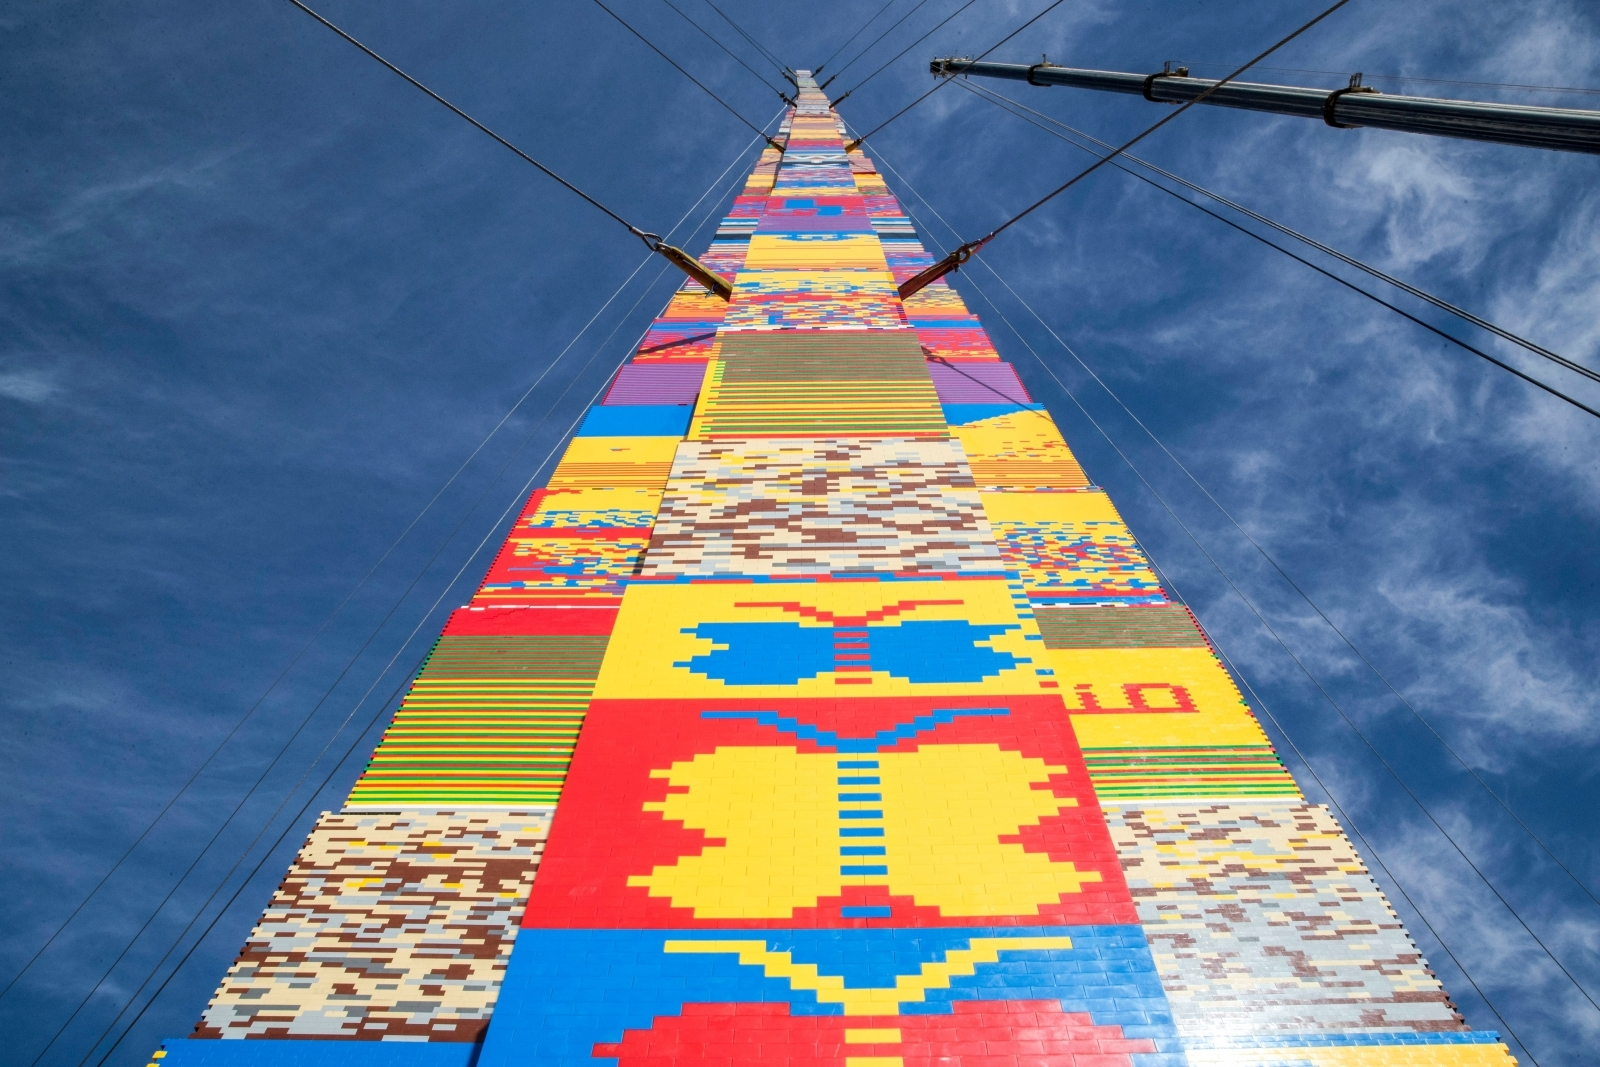 Lego Tower 5